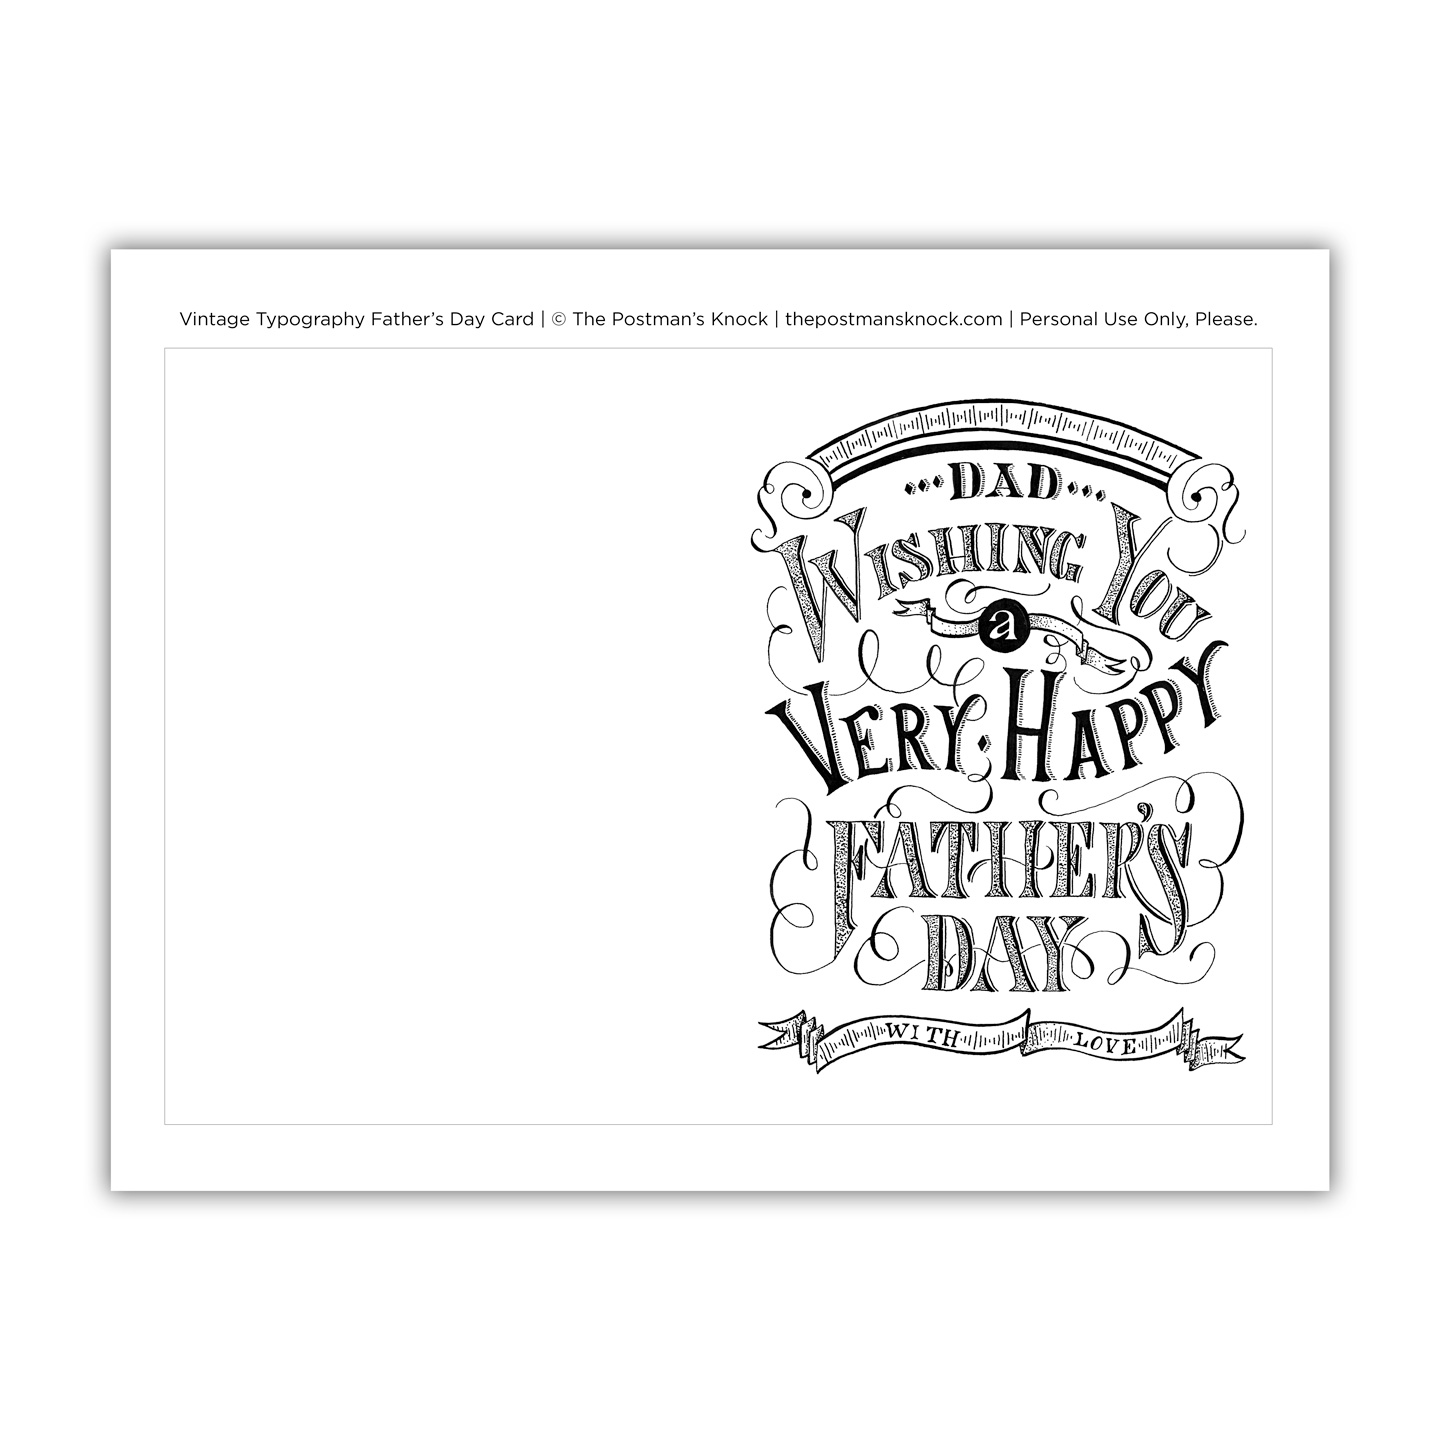 image relating to Printable Fathers Day Cards to Color known as Typical Typography Fathers Working day Card